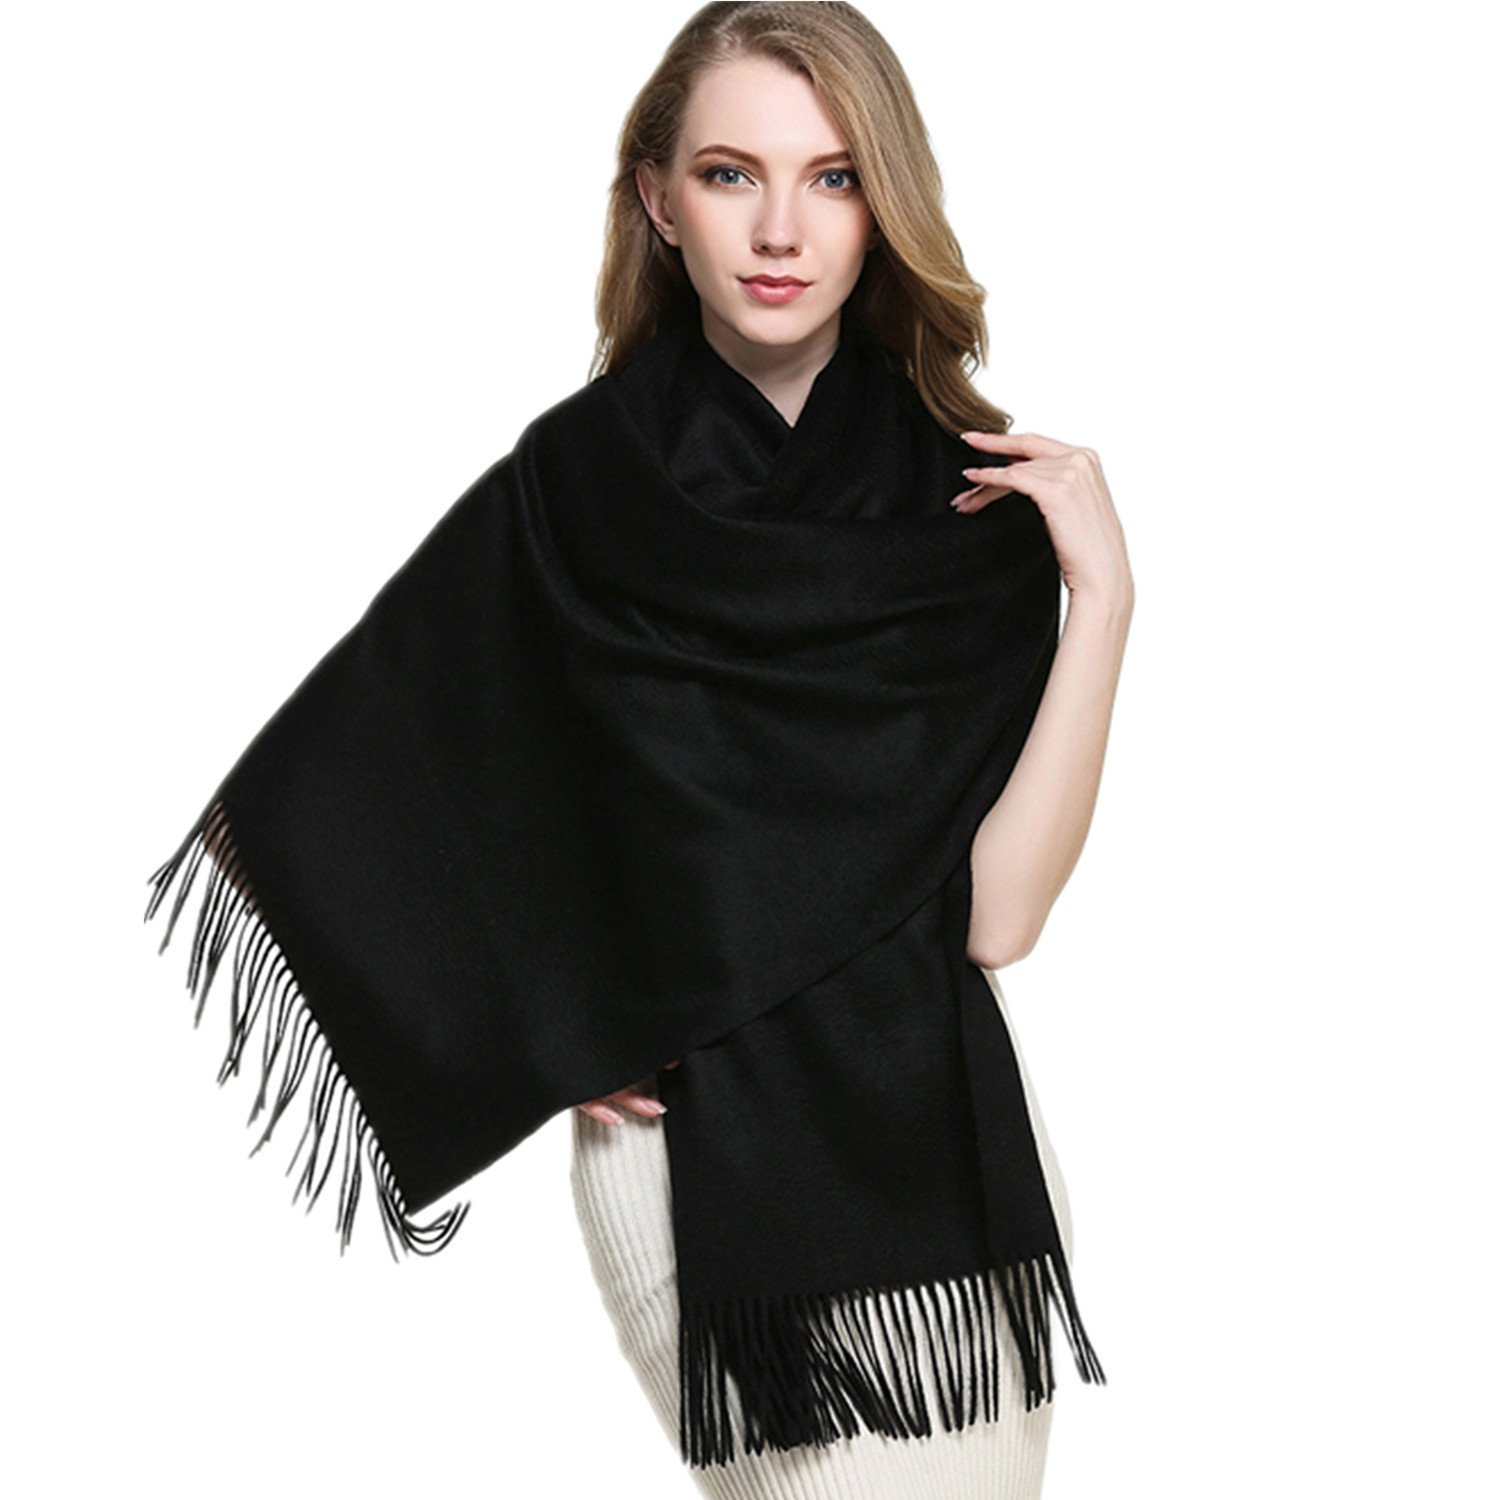 Saferin Extra Large 78'' X 28'' Women and Men Thick Solid Cashmere Wool Pashmina Wrap Shawl Scarf with Gift Box(1.black) by SAFERIN